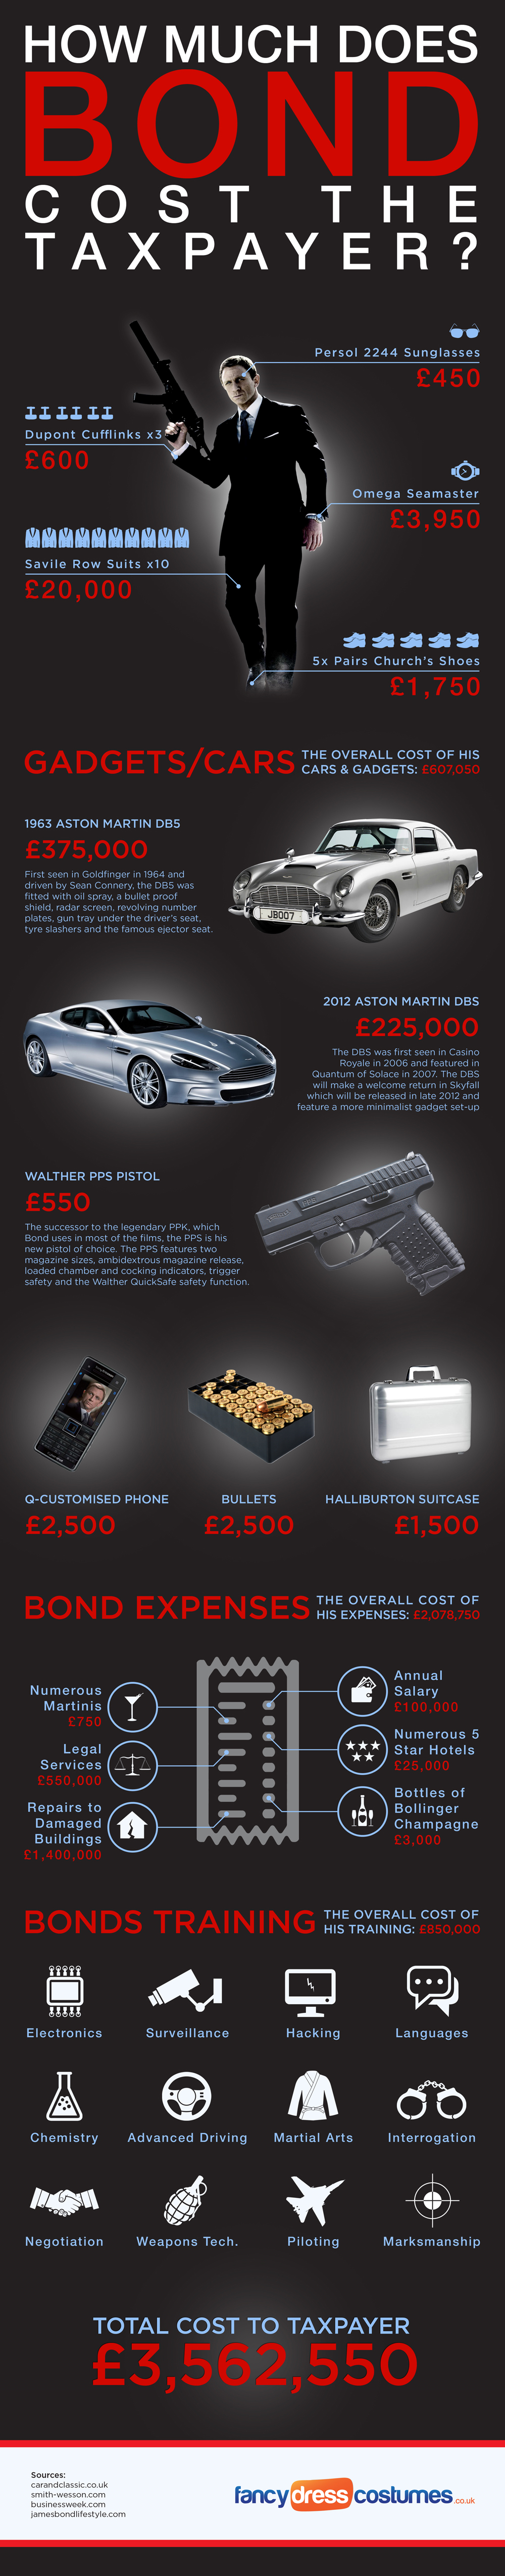 3. How much does James Bond cost to the tax payer